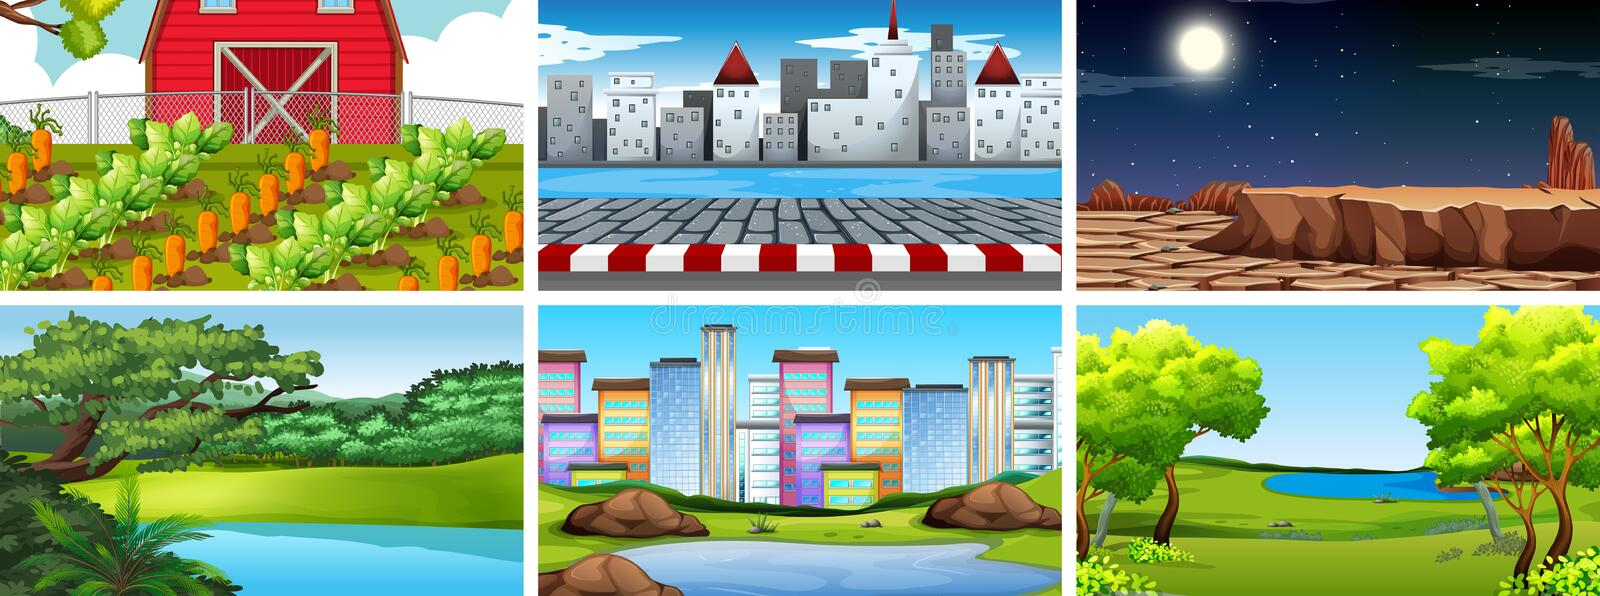 Set of nature scenes including farming, urban, city and deserts. Illustration royalty free illustration